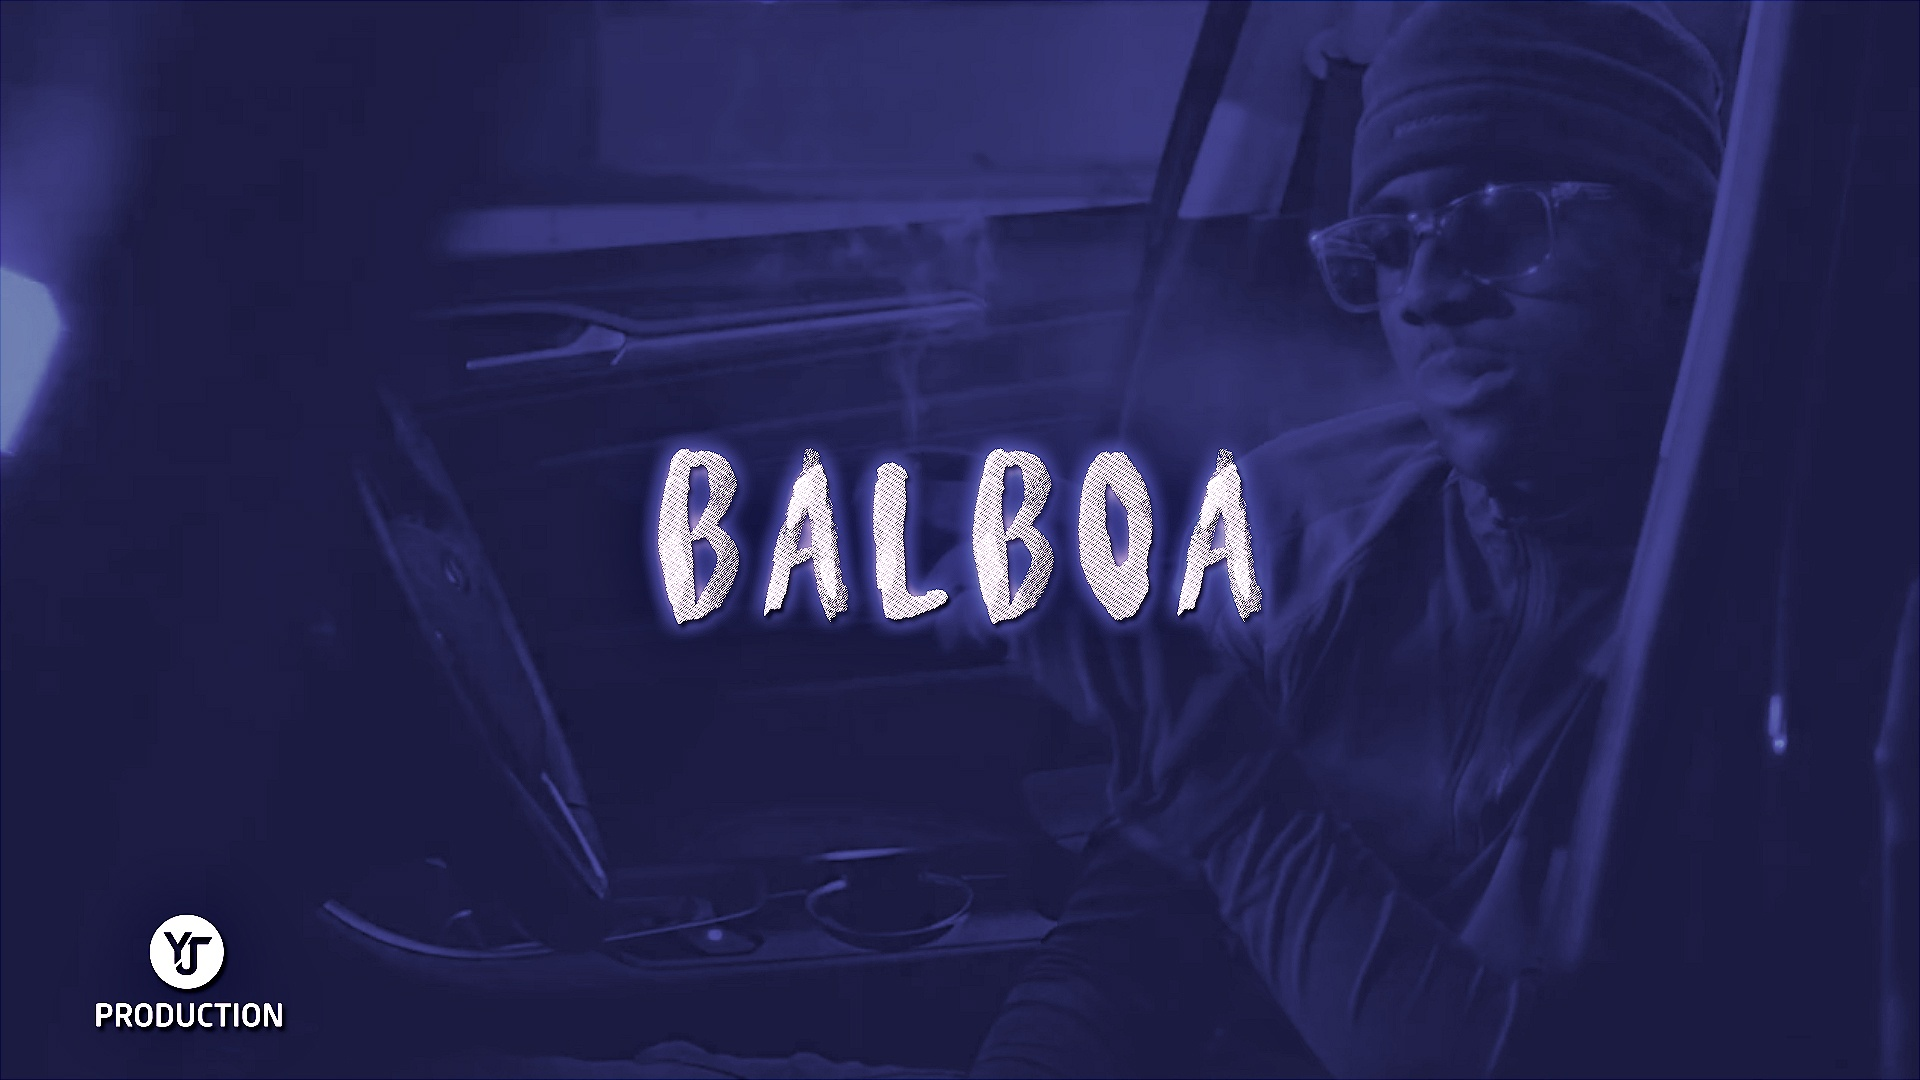 [FREE] BALBOA | YJ Production